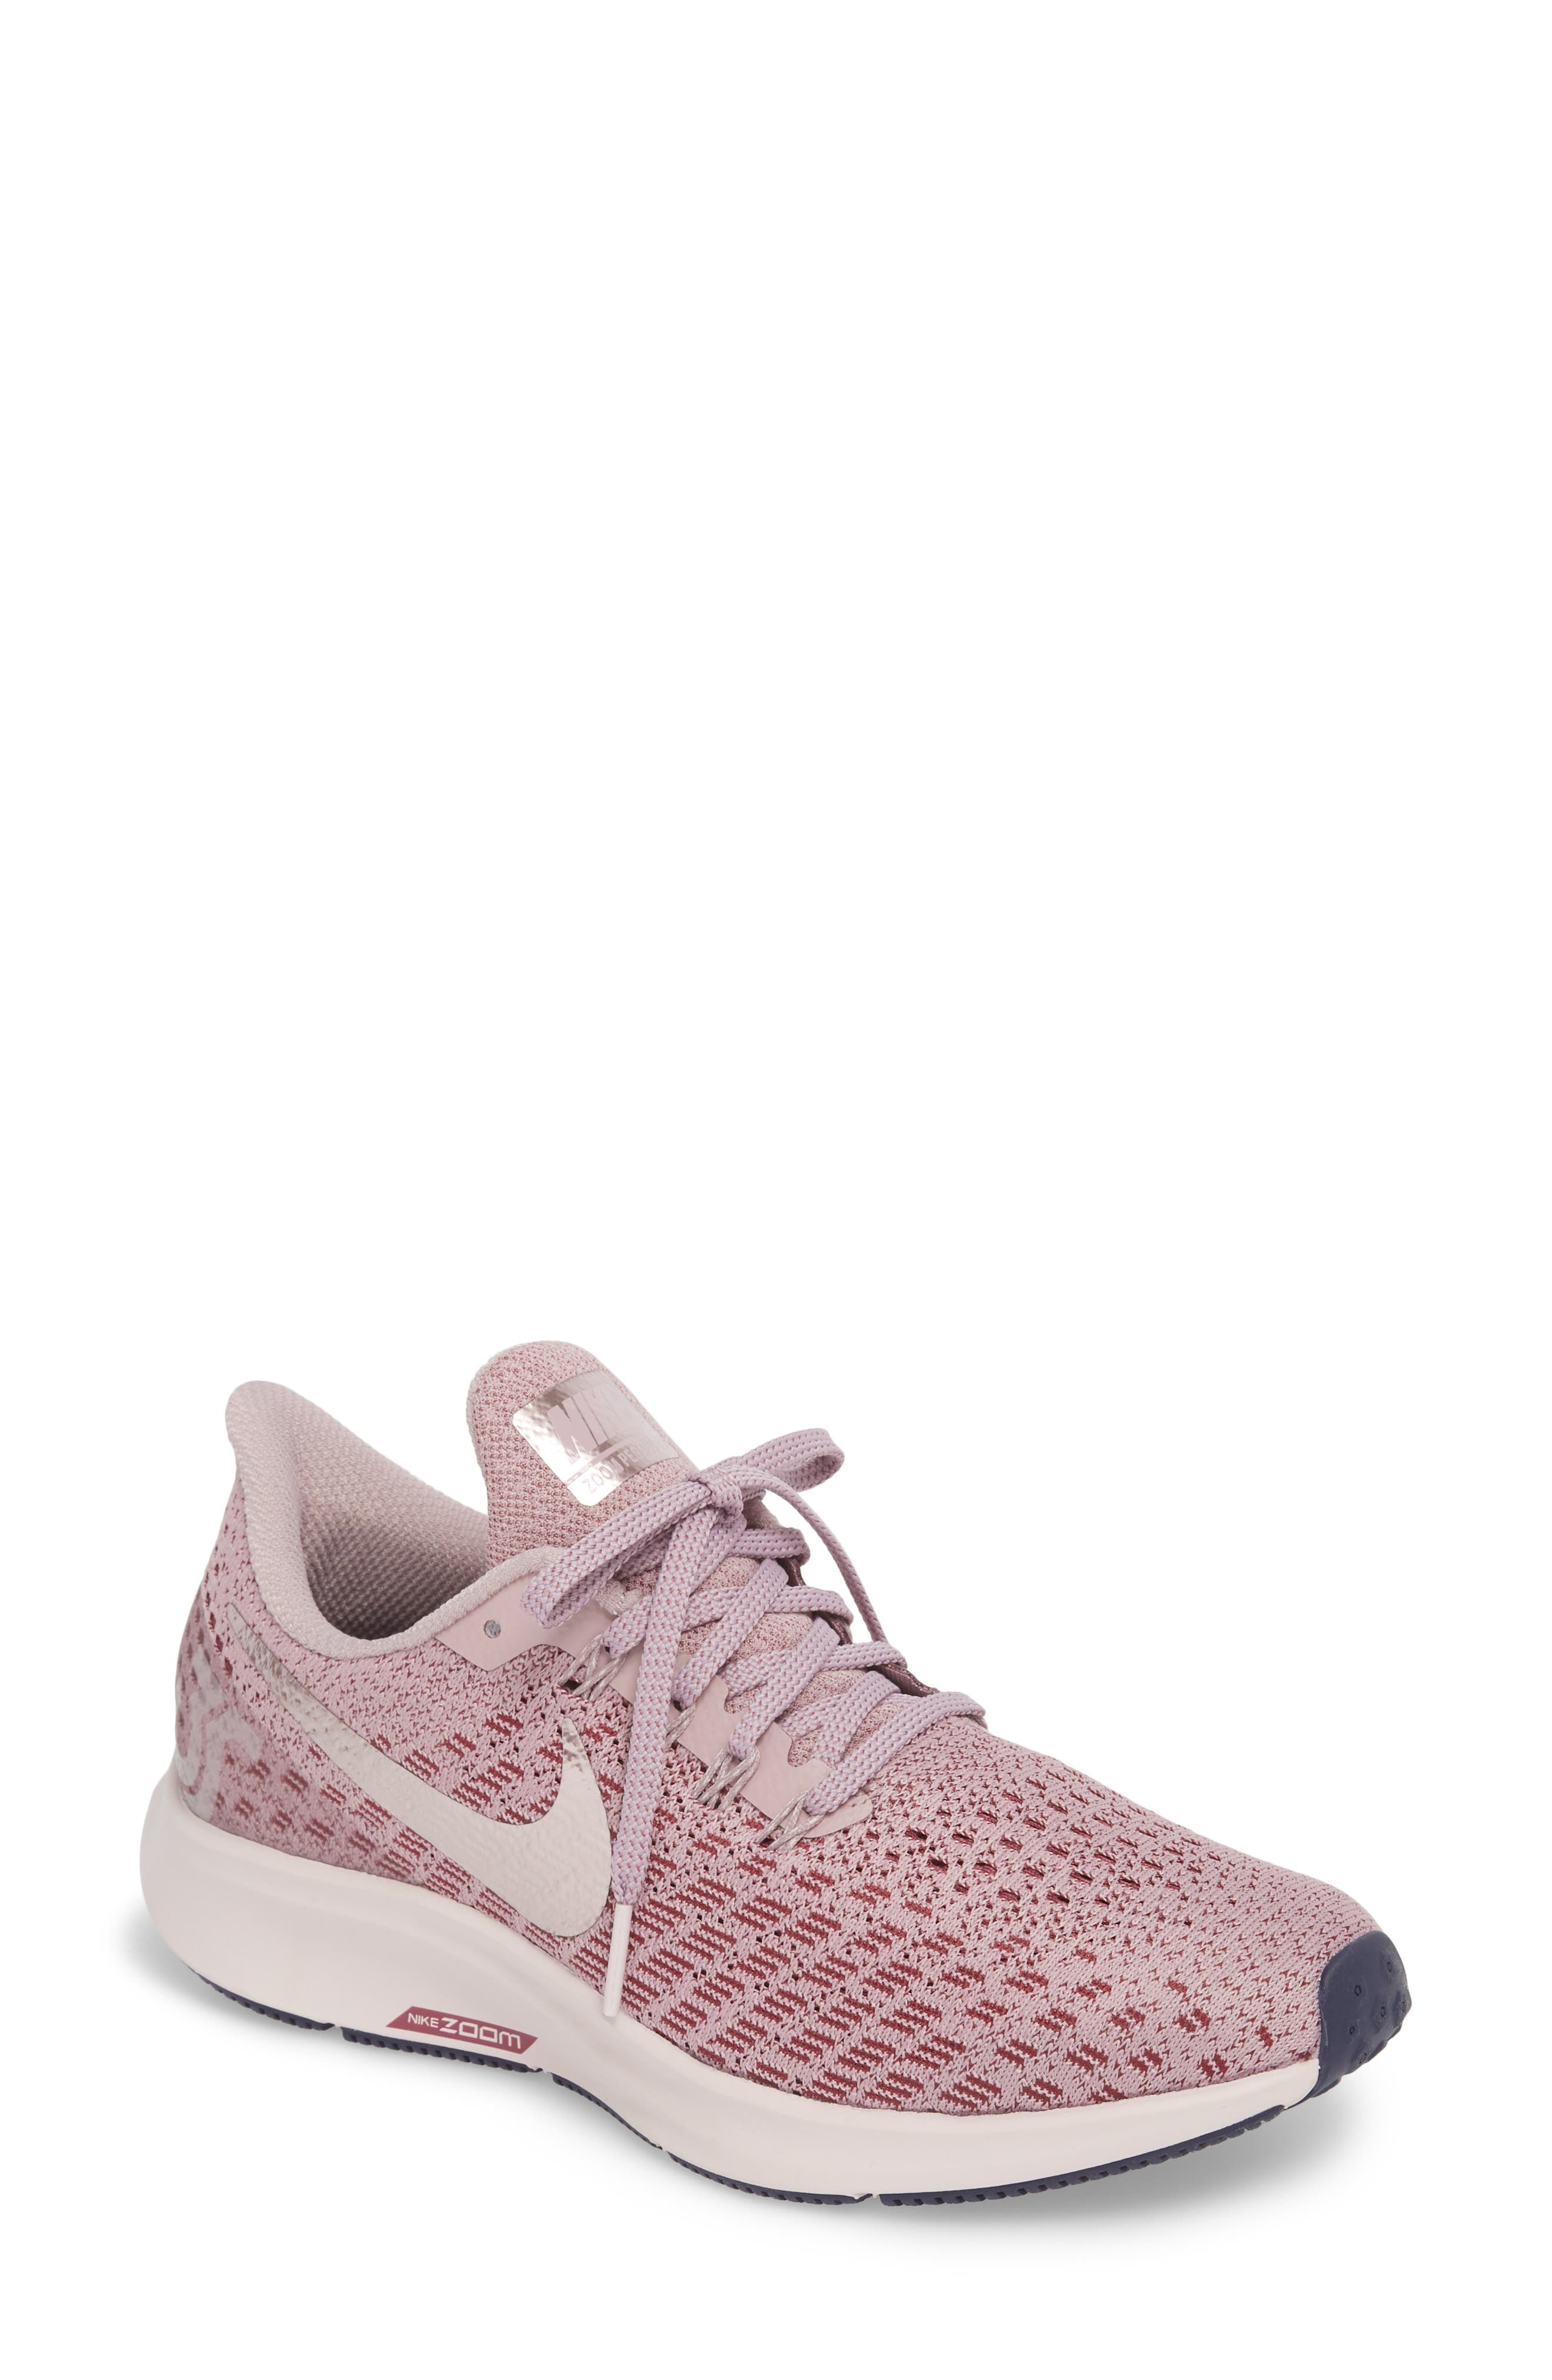 Air Zoom Pegasus 35 Running Shoe,                         Main,                         color, ELEMENTAL ROSE/ BARELY ROSE